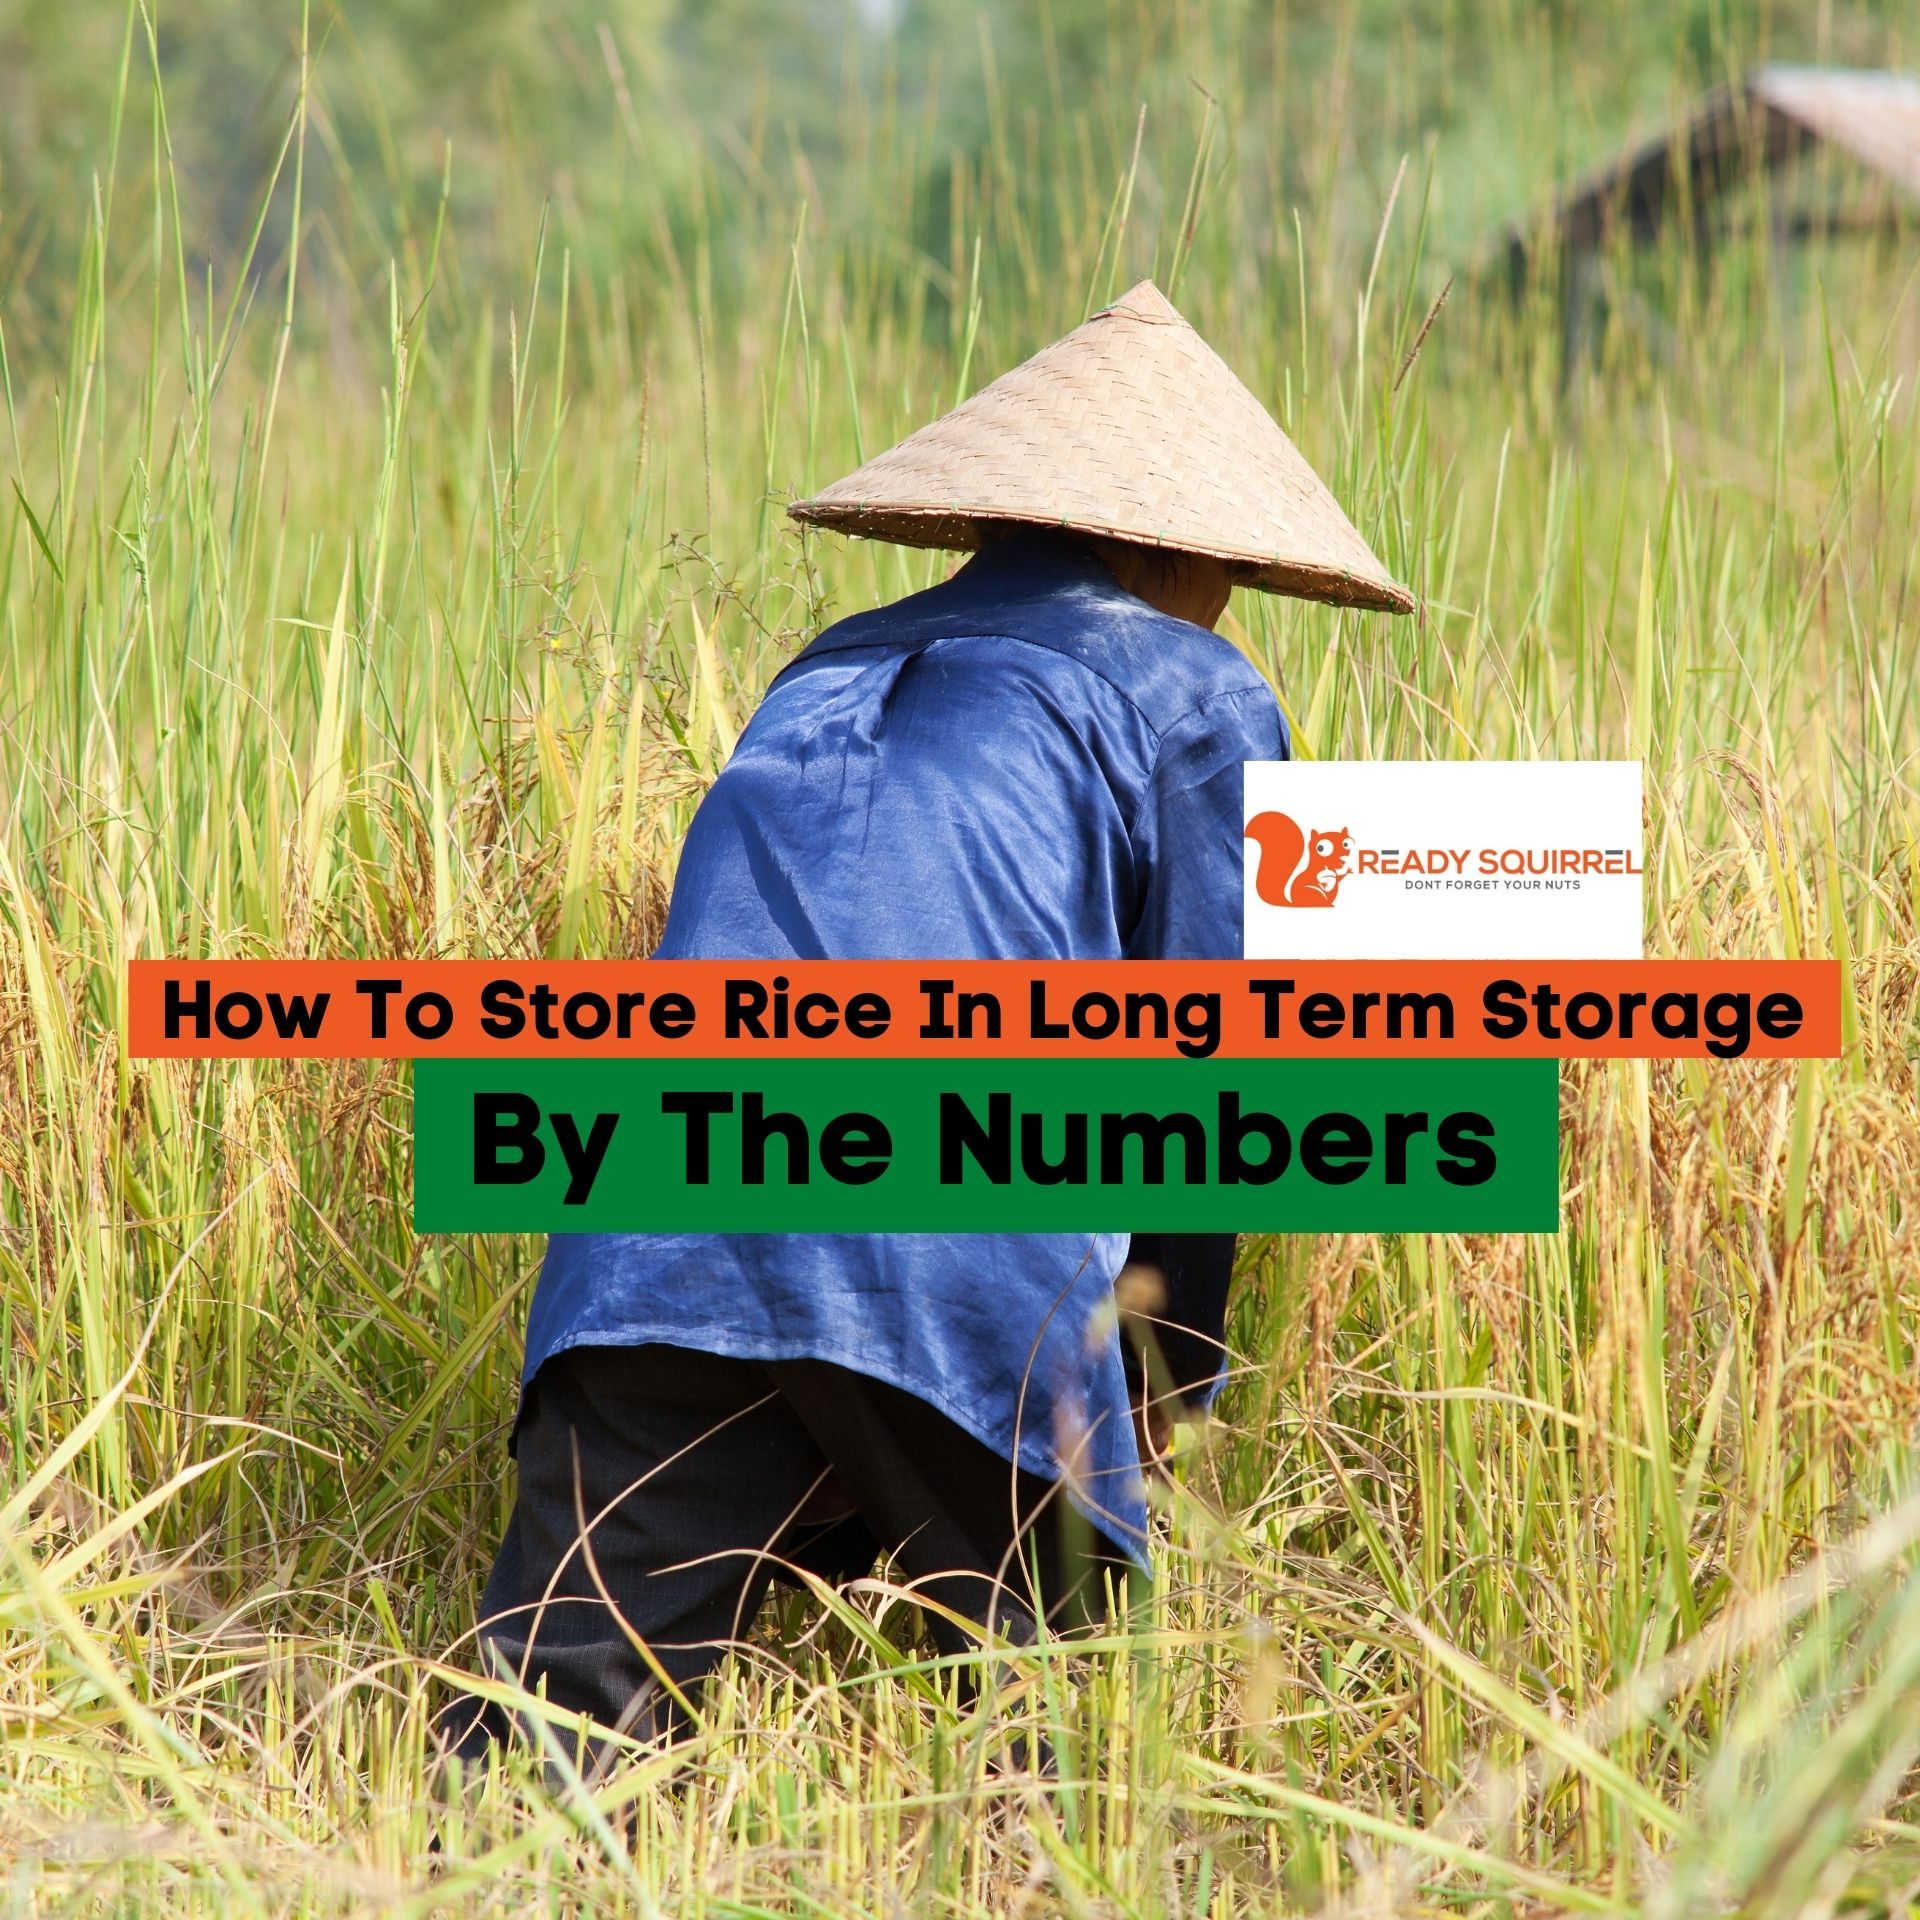 How To Store Rice In Long Term Storage: By the Numbers